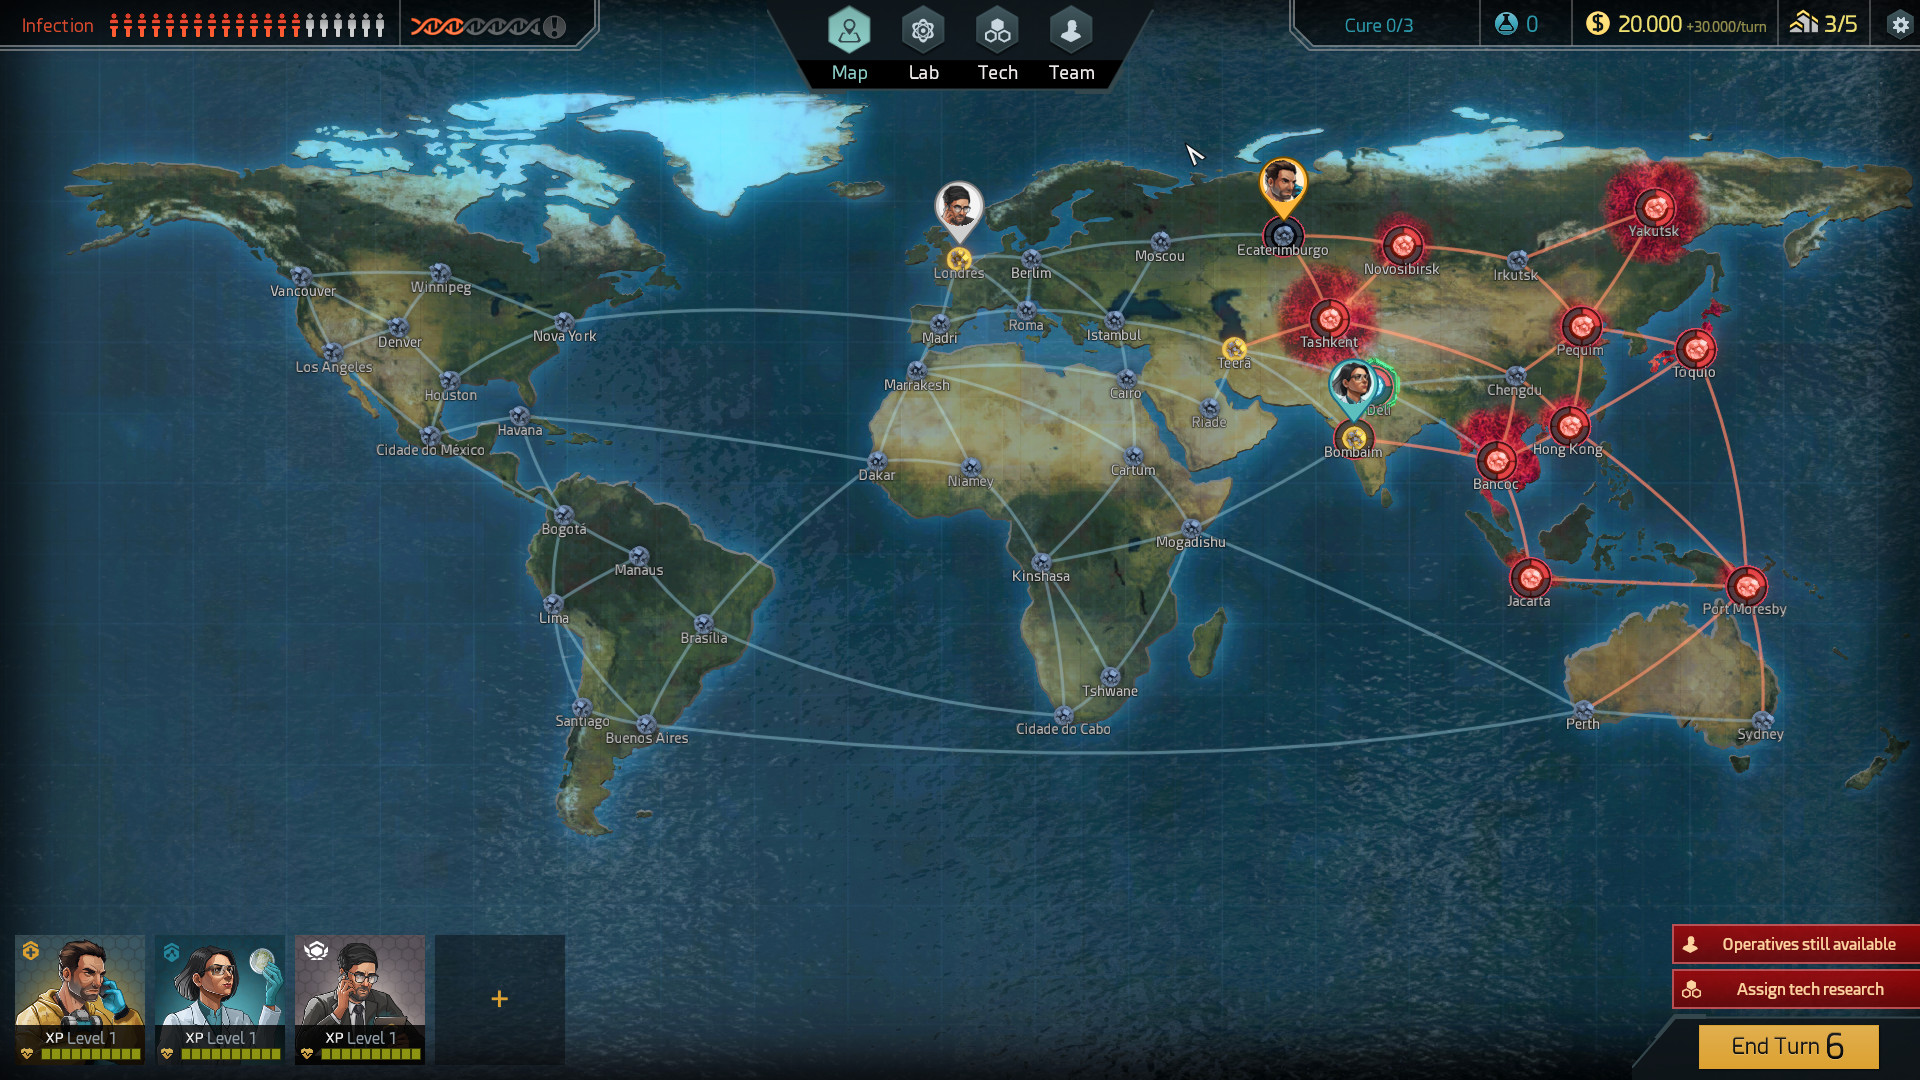 Quarantine screenshot